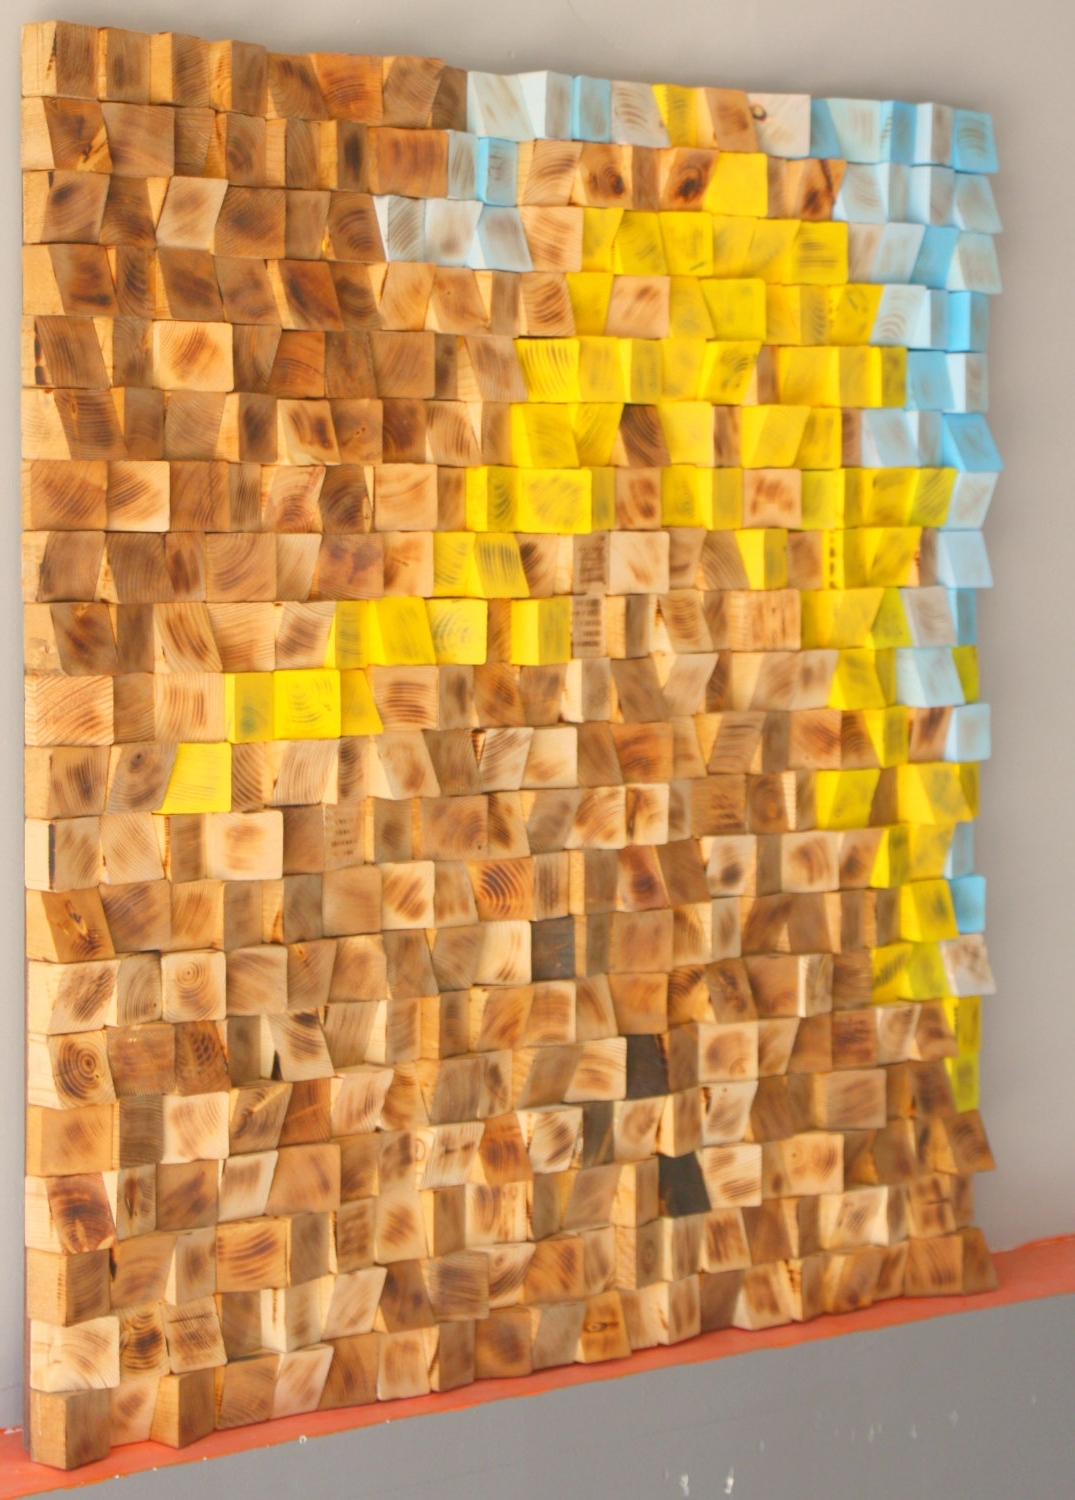 Most Popular Modern Wall Art For Buy Reclaimed Wood Wall Art, Wood Mosaic, Geometric Art, Wood Wall (View 10 of 15)